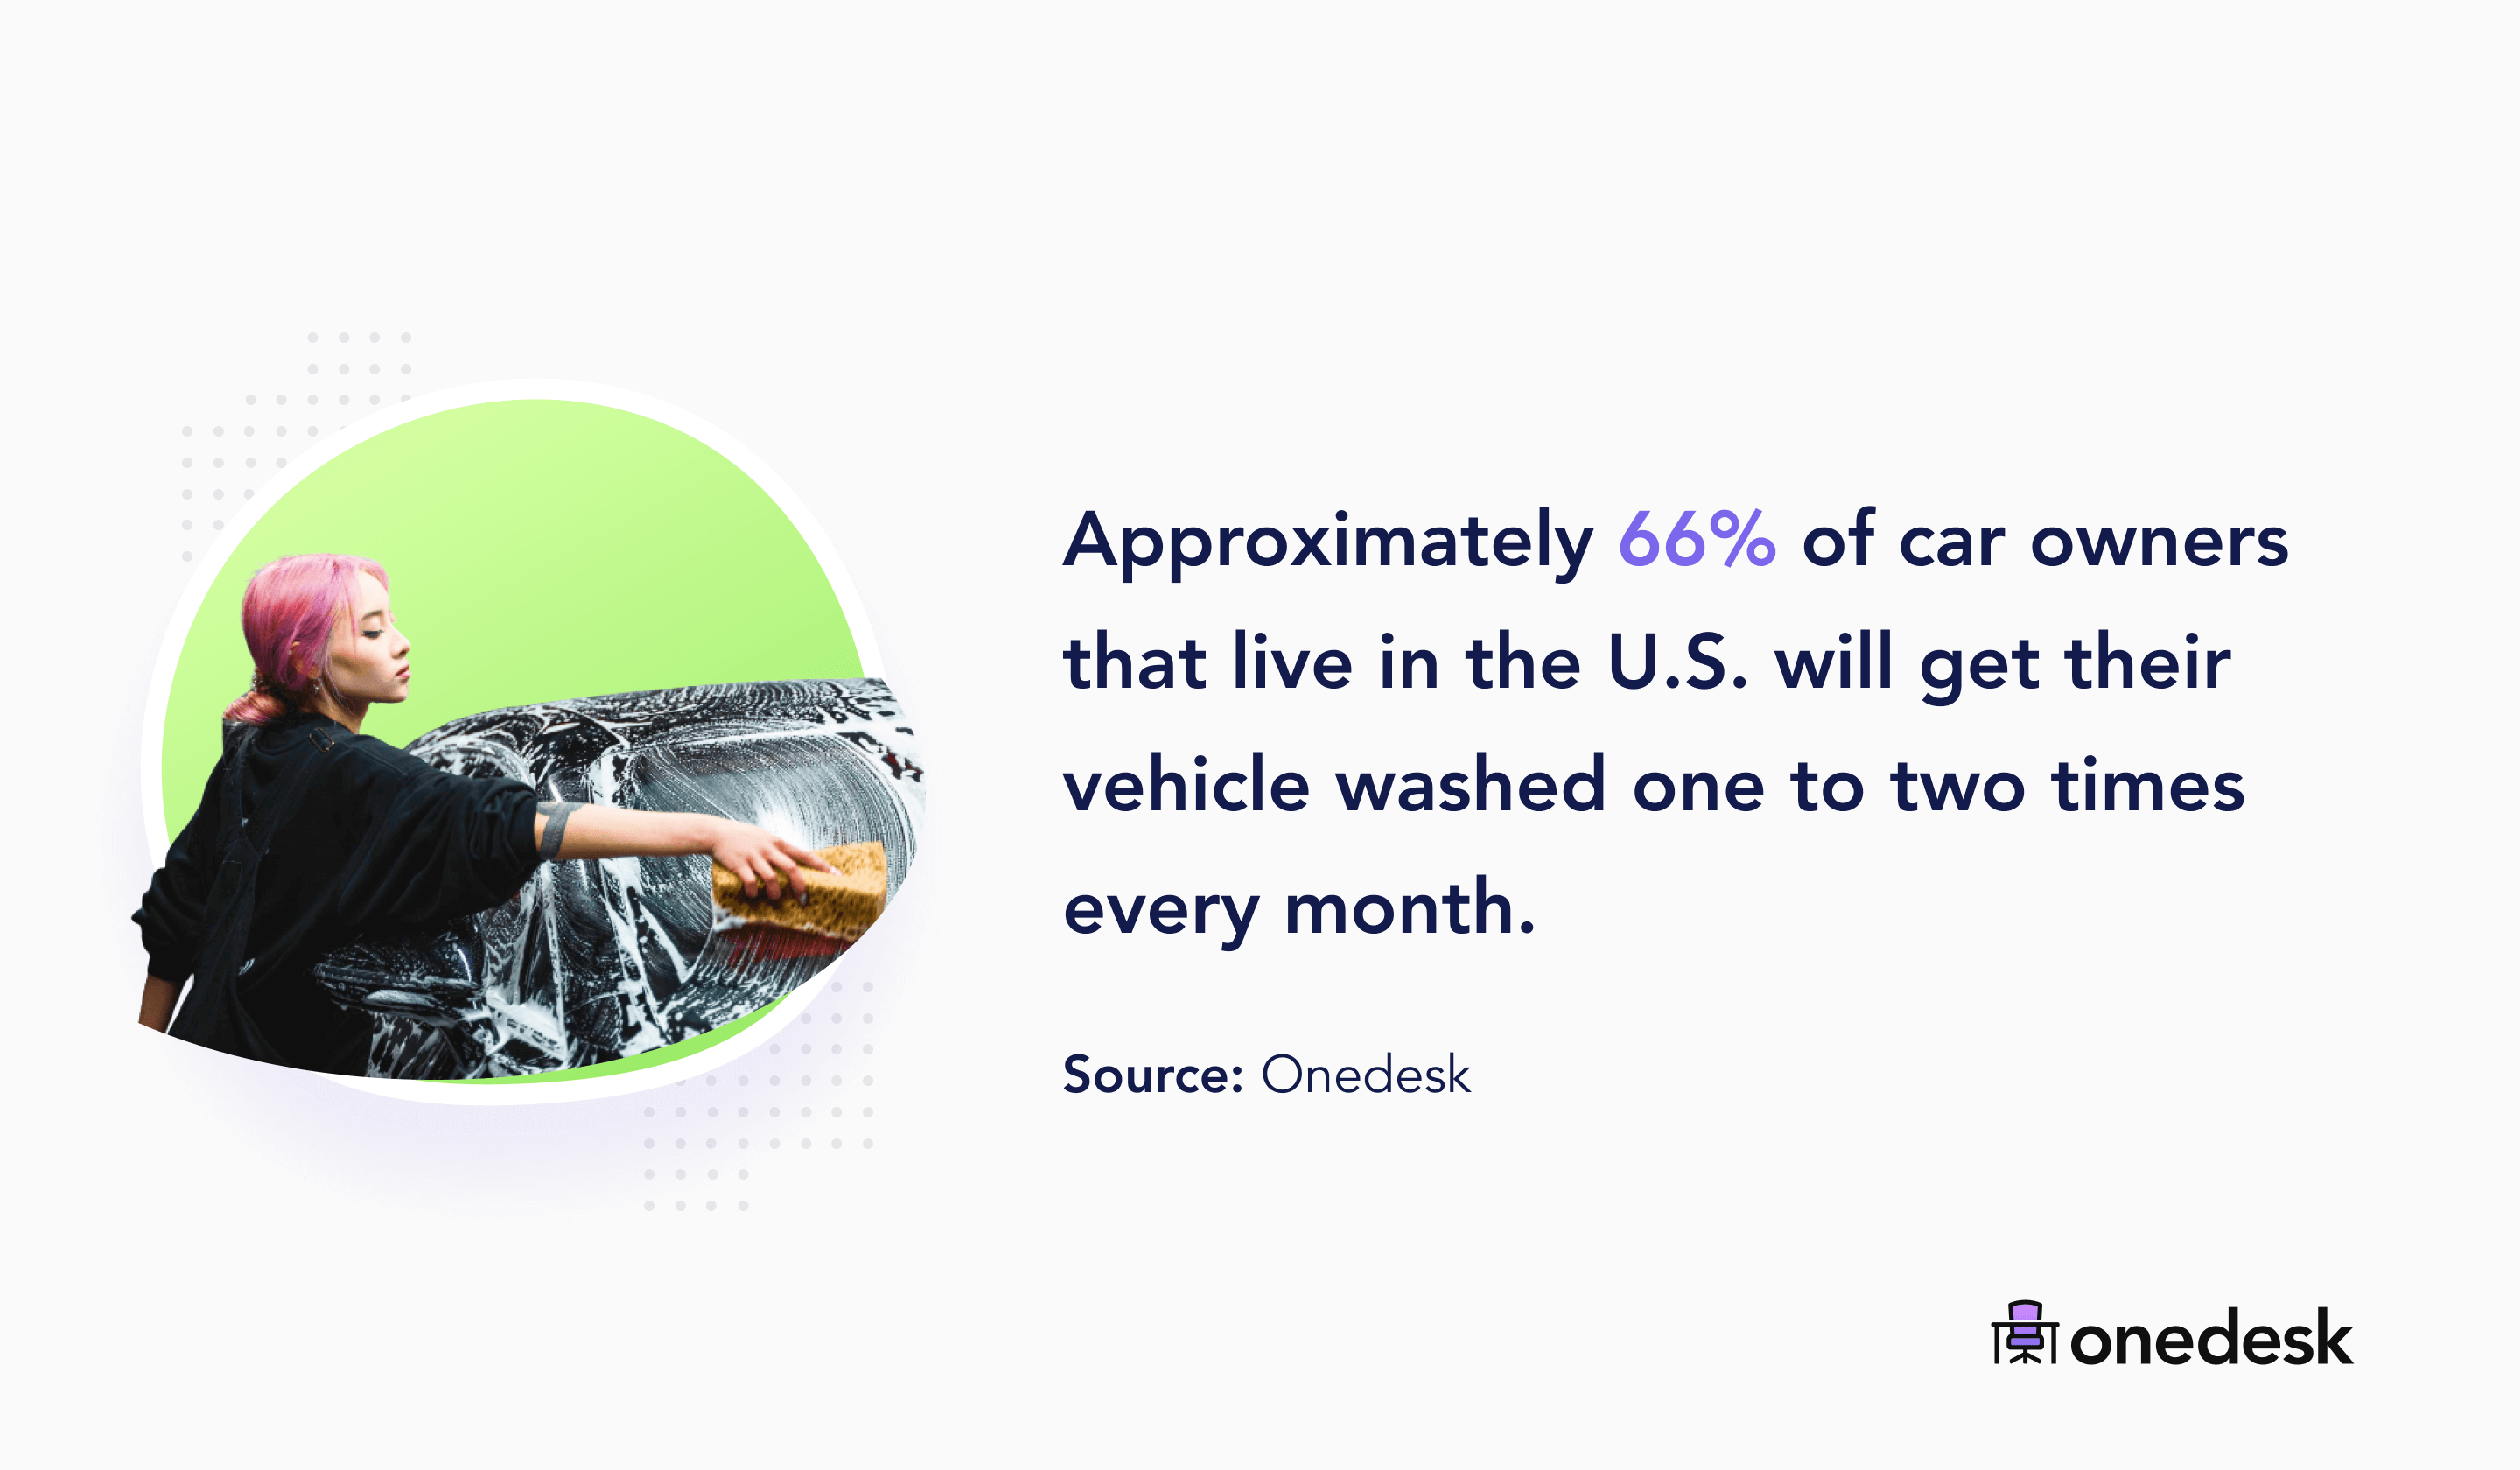 66% of car owners wash their car 1 to 2 times every month